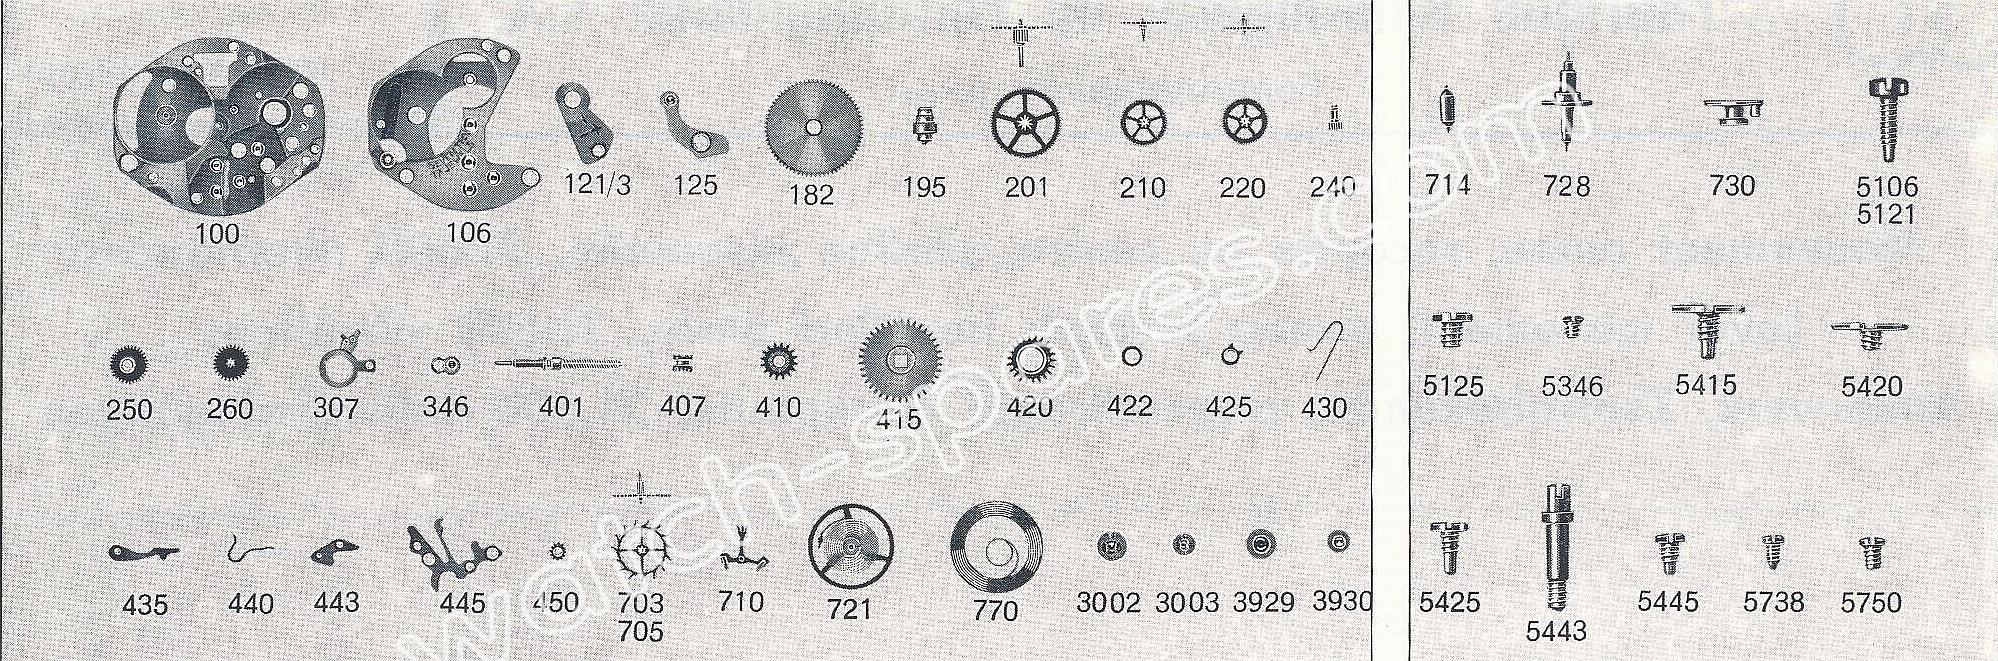 FHF ST 691 watch spare parts